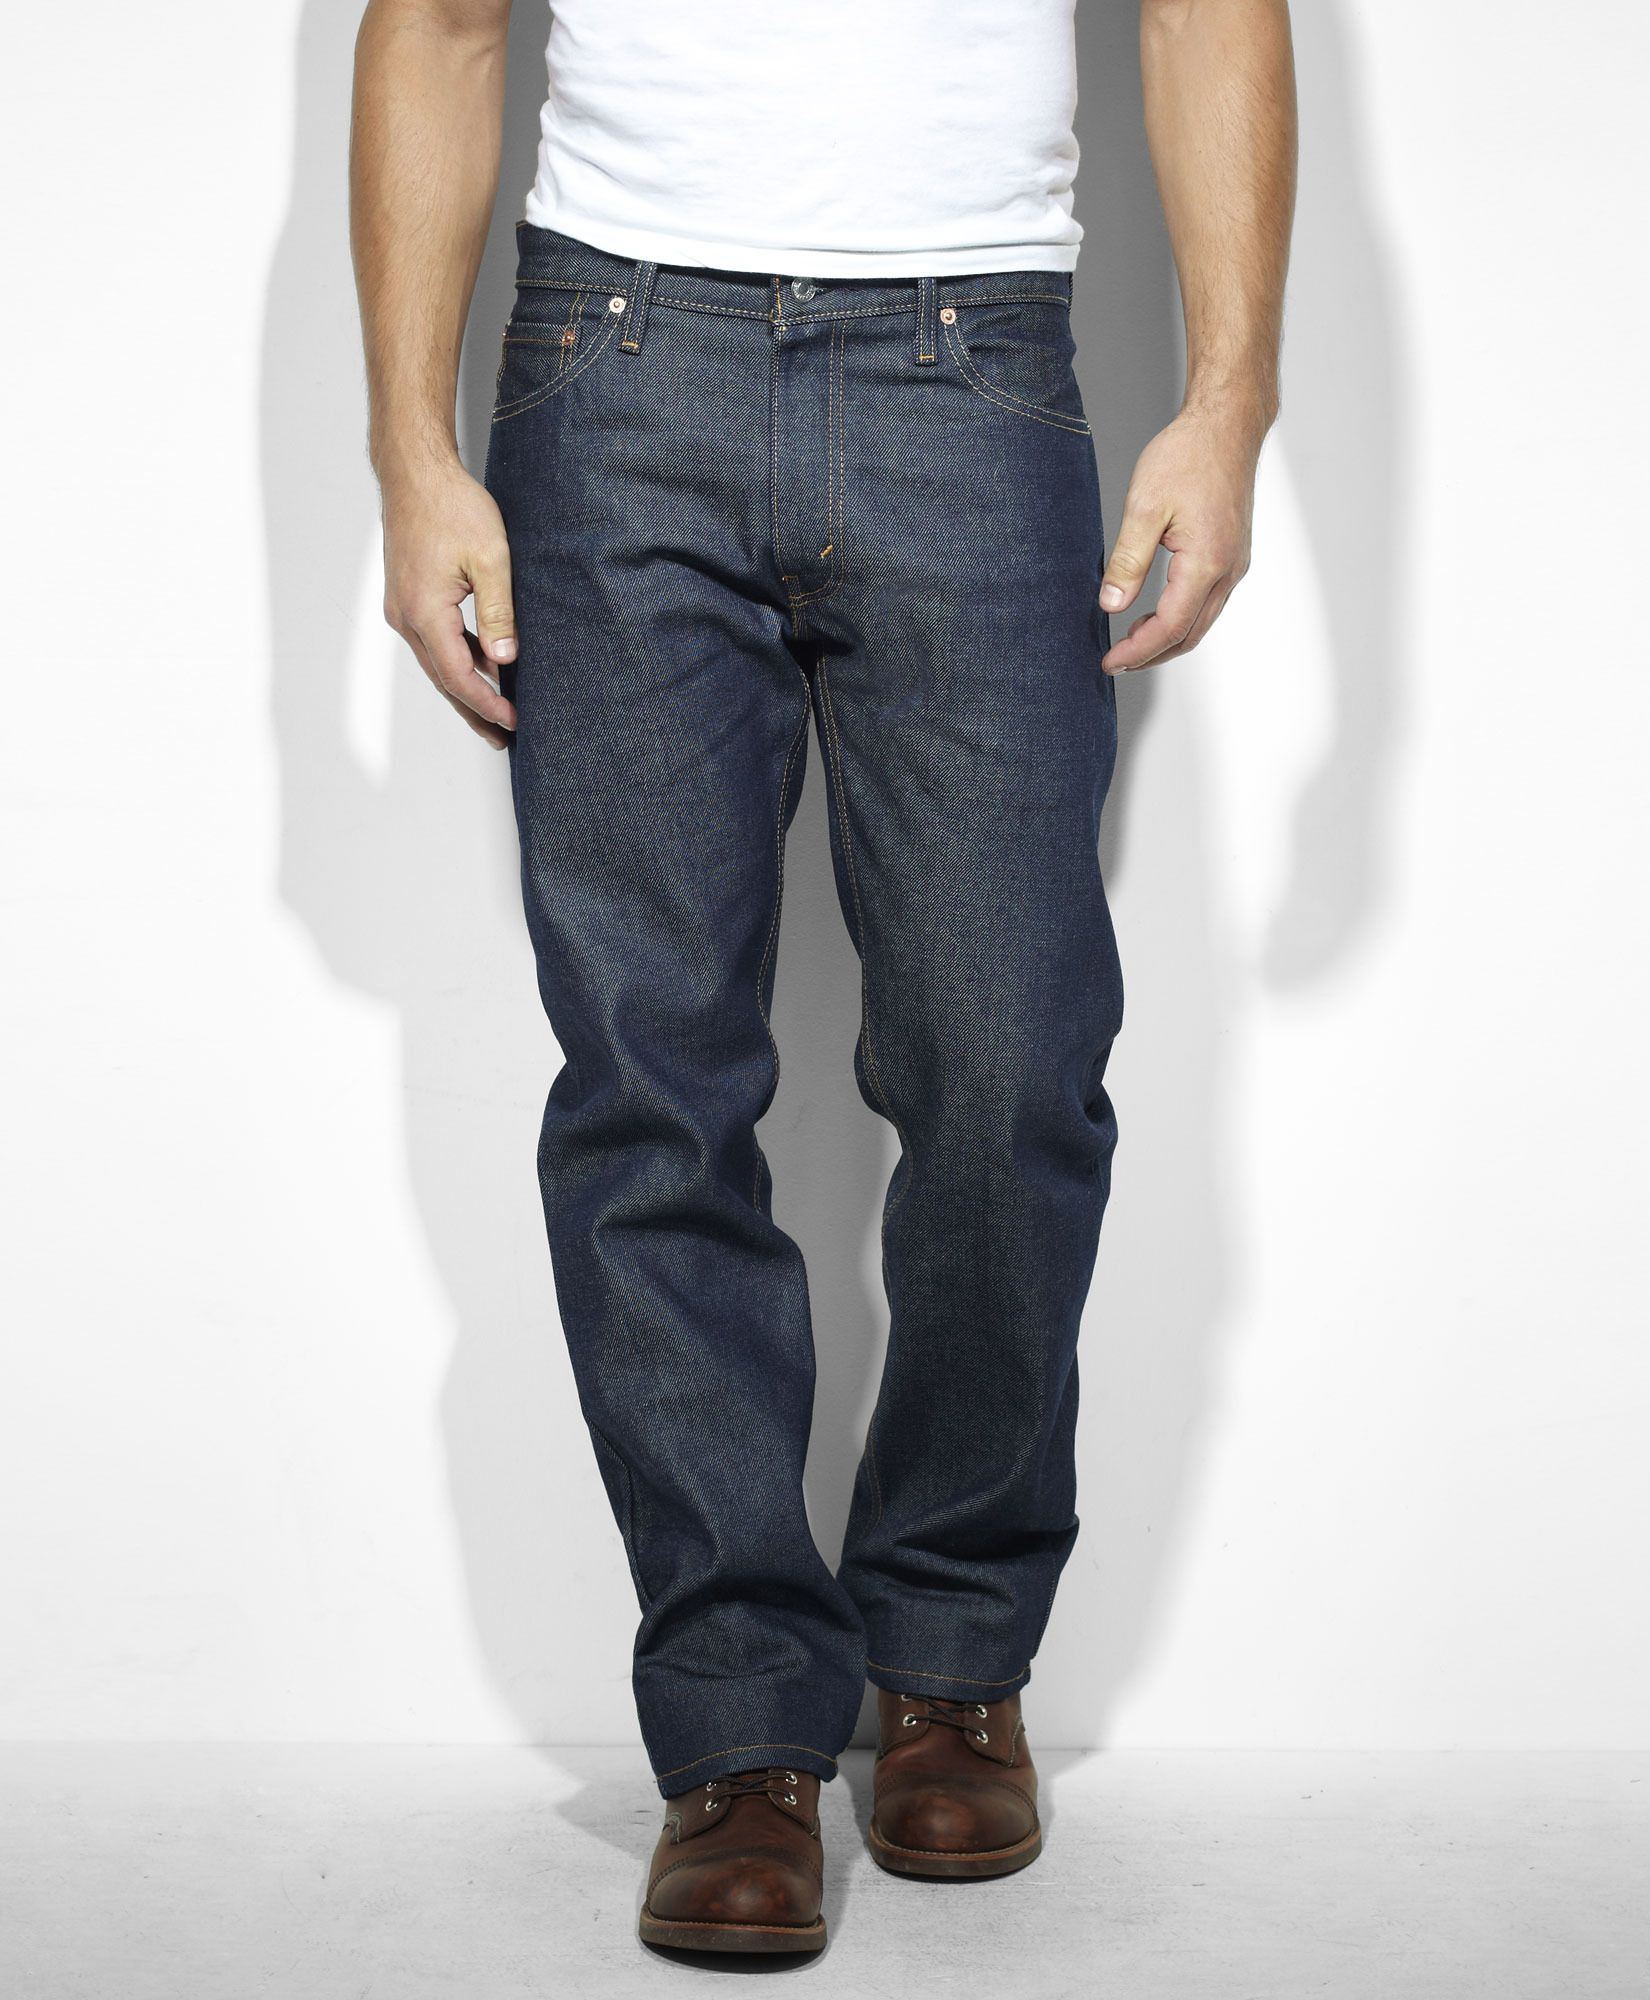 519e9b7740ec4 Levi s 505™ Straight Fit Jeans - Rigid - 505® Straight Fit 33x32 ...